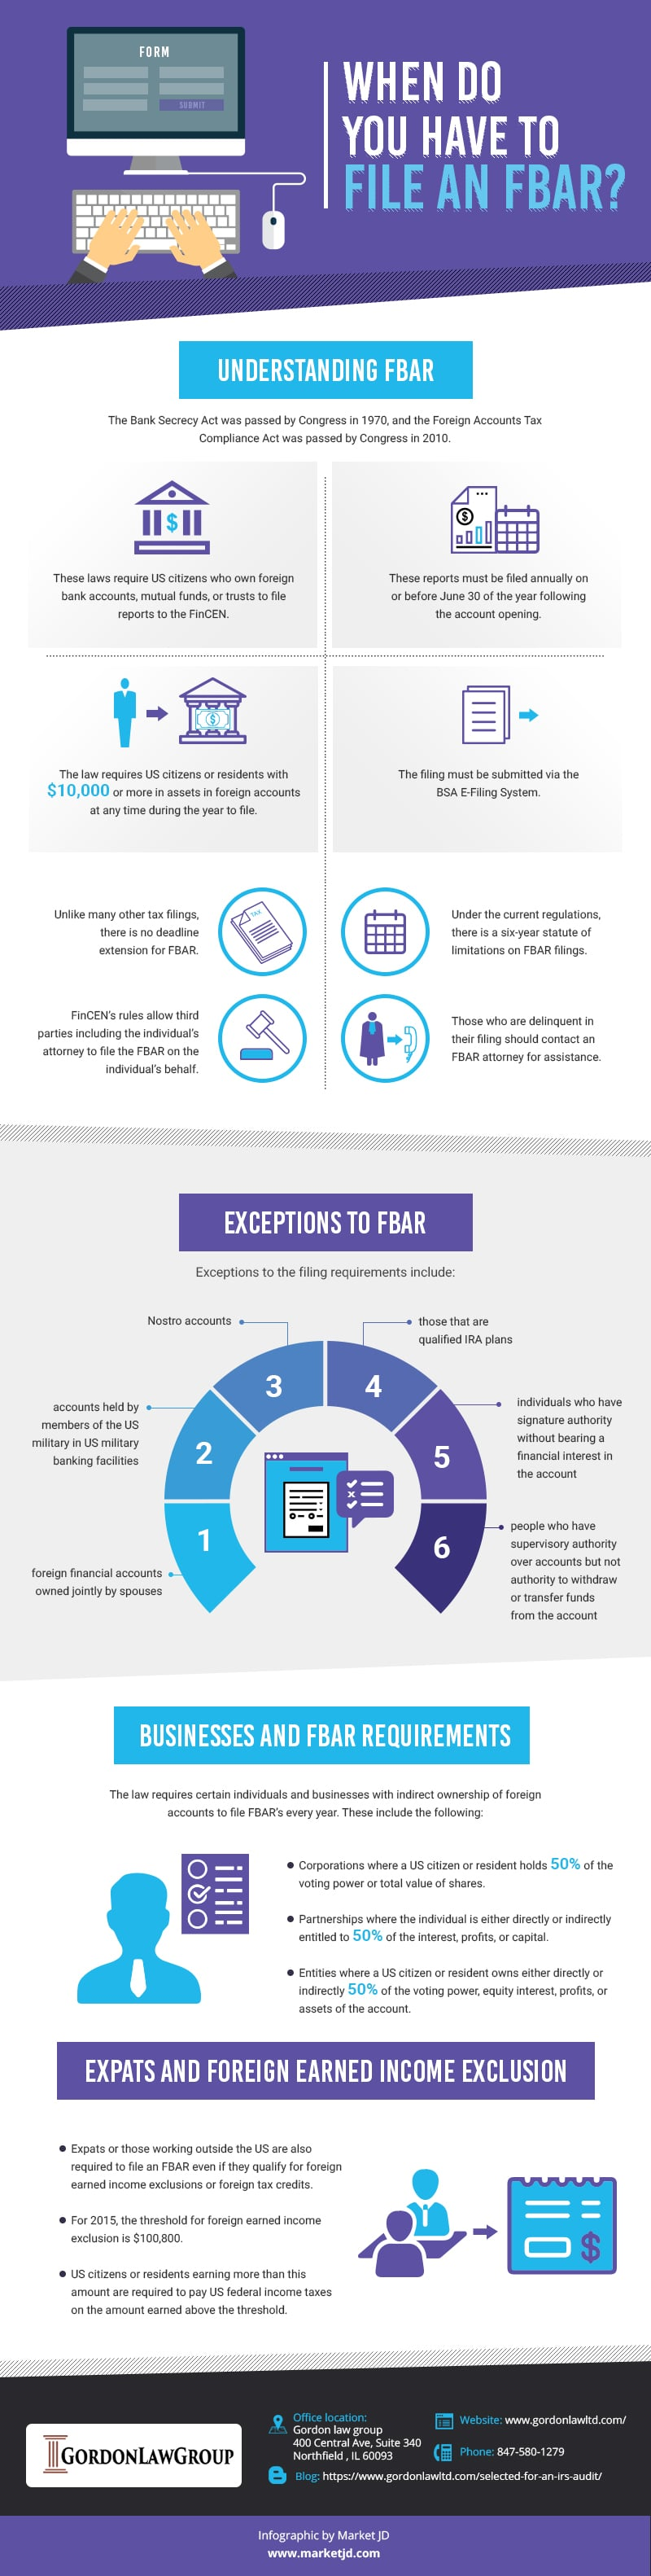 infographic_When Do You Have To File An FBAR